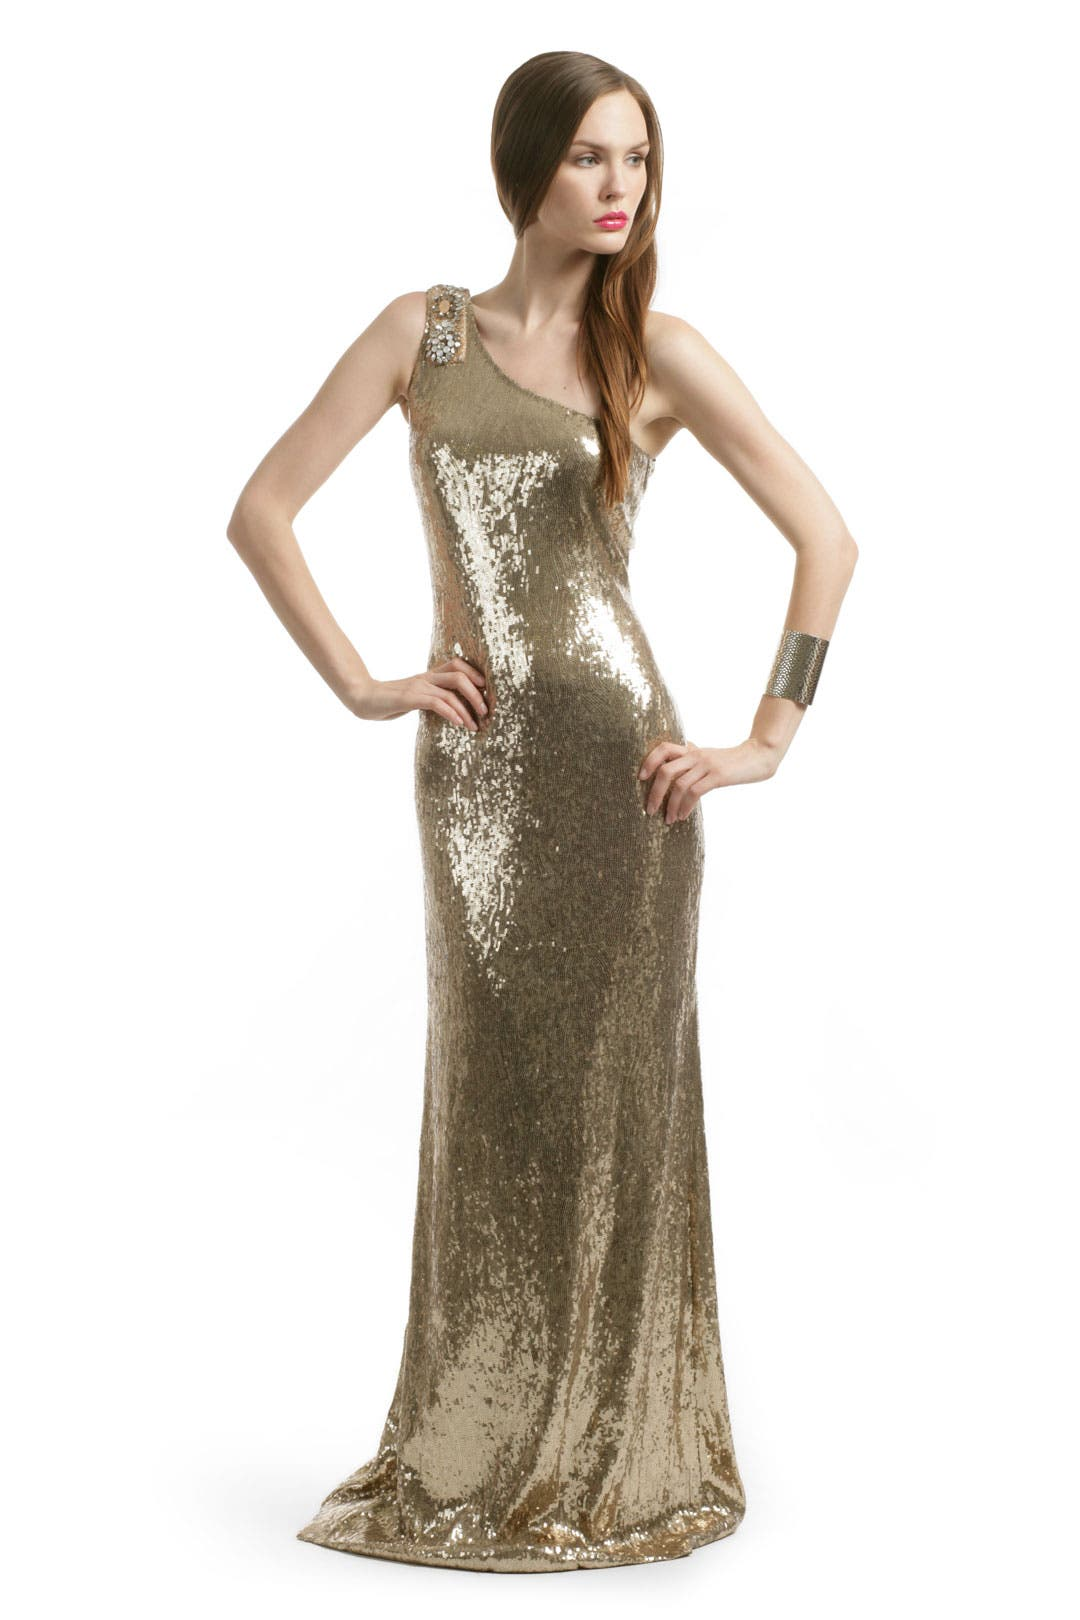 Gold Glam Sequin Gown by Blugirl